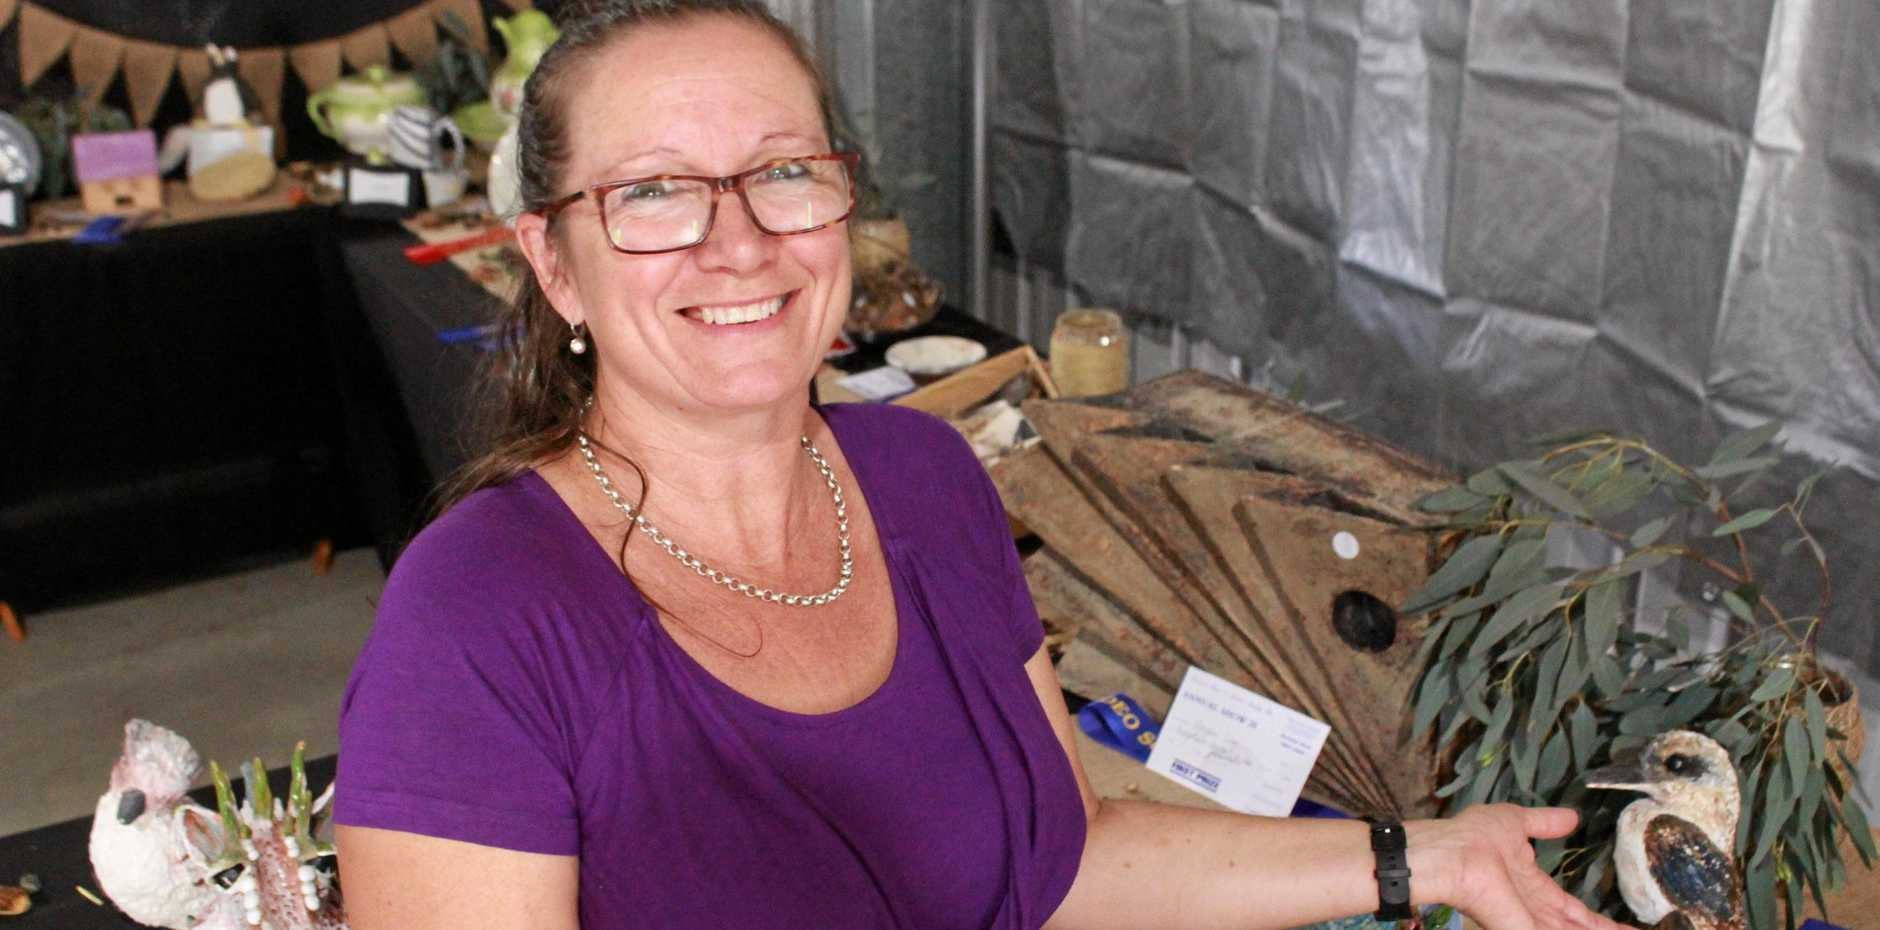 POTTERY CORNER: Penny Kiny runs the pottery section at the Warwick Show 2019.